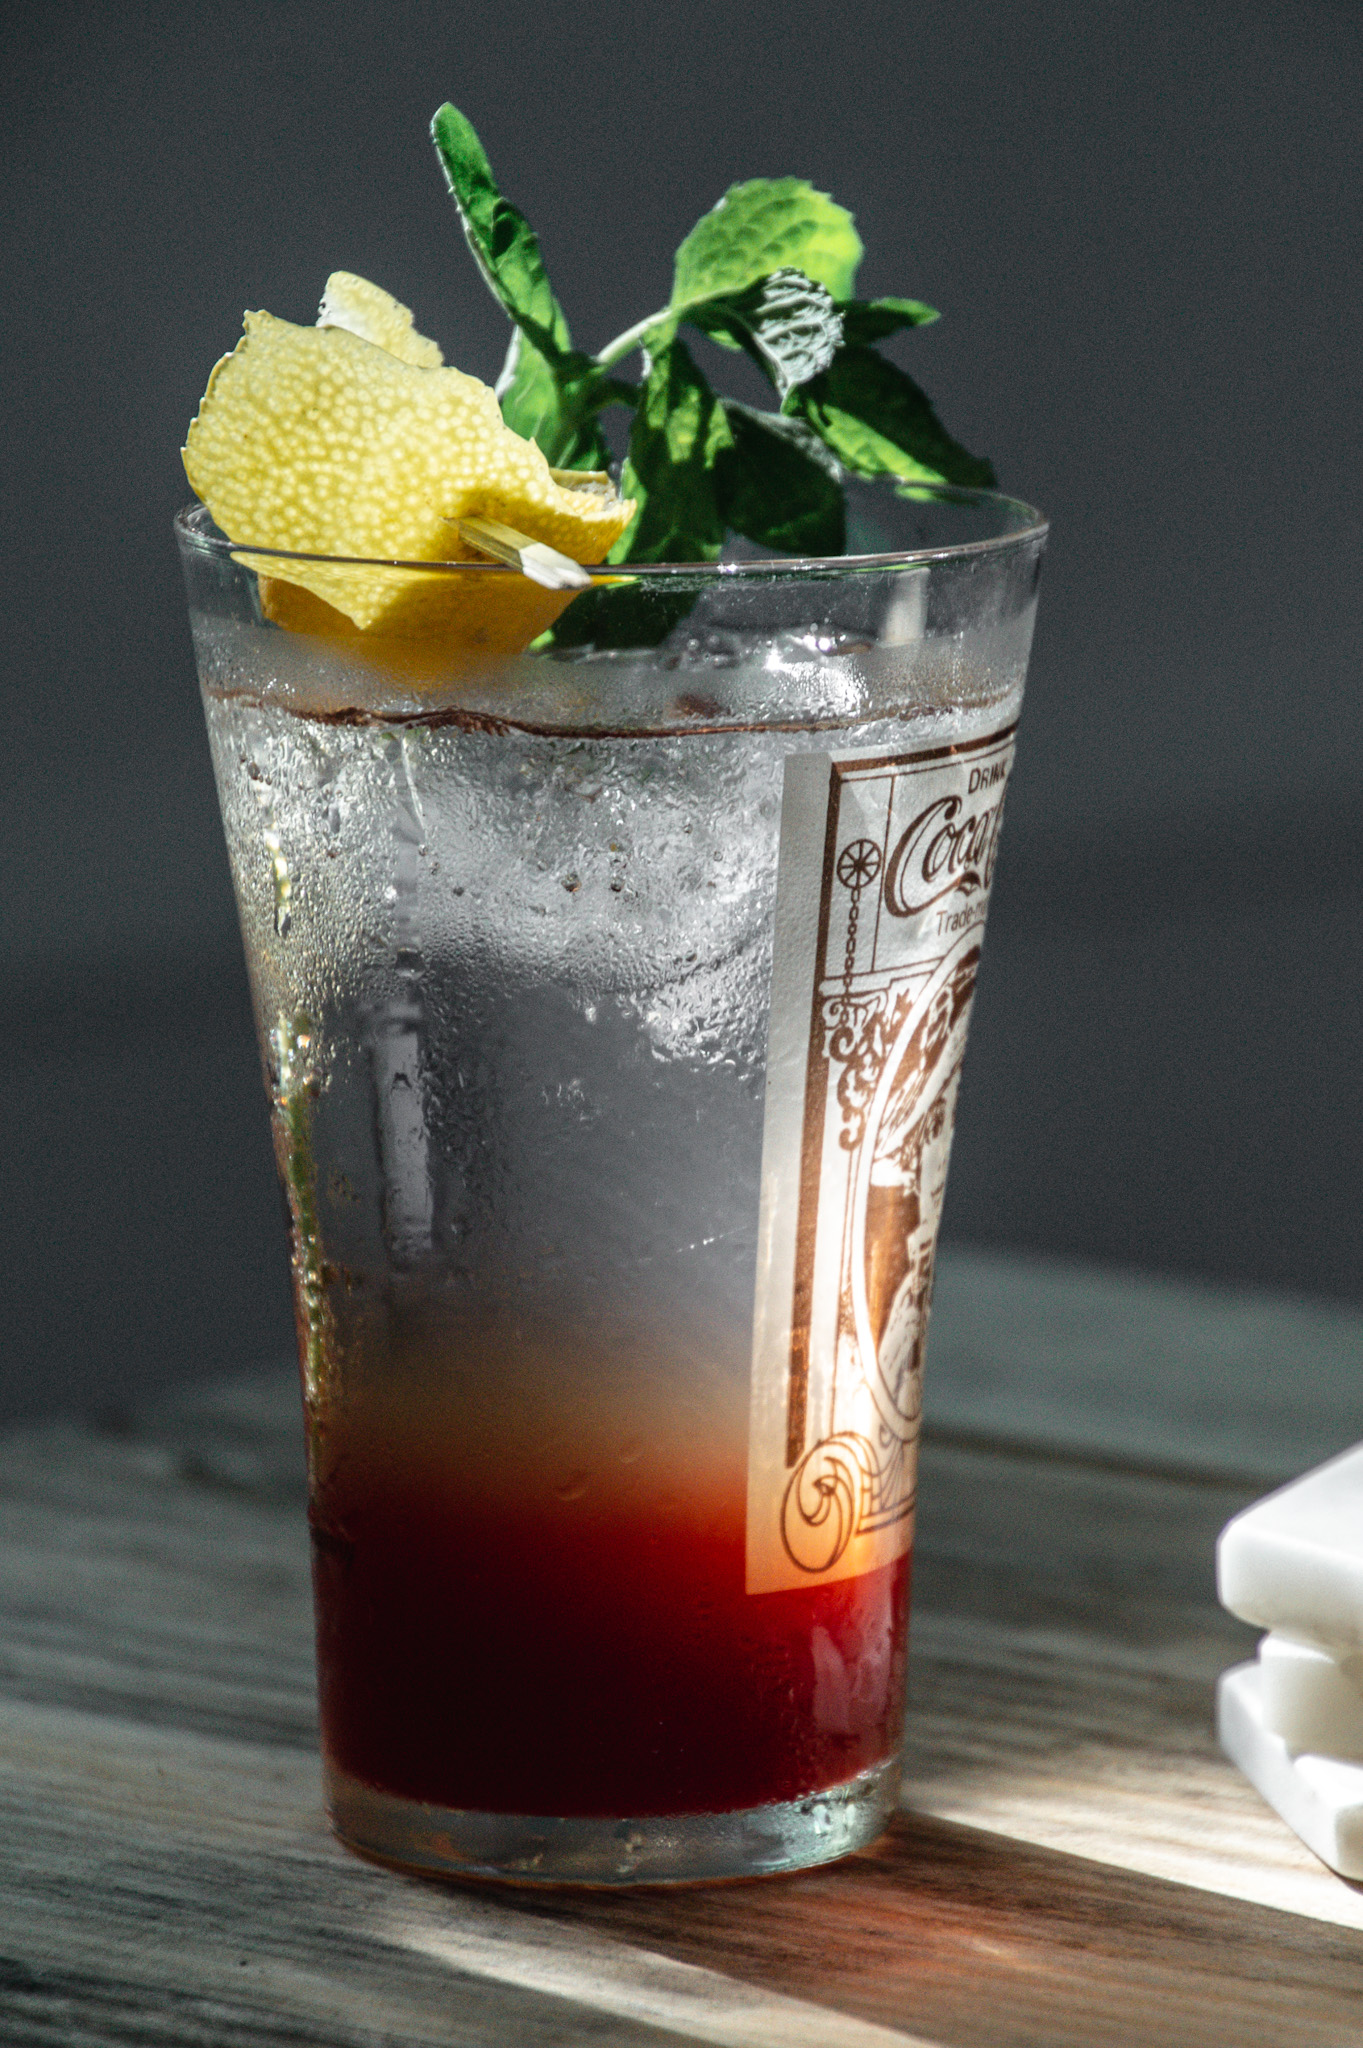 refreshing raspberry lemonade sparkling iced tea from a refrigerator iced tea concentrate... making moments at home.